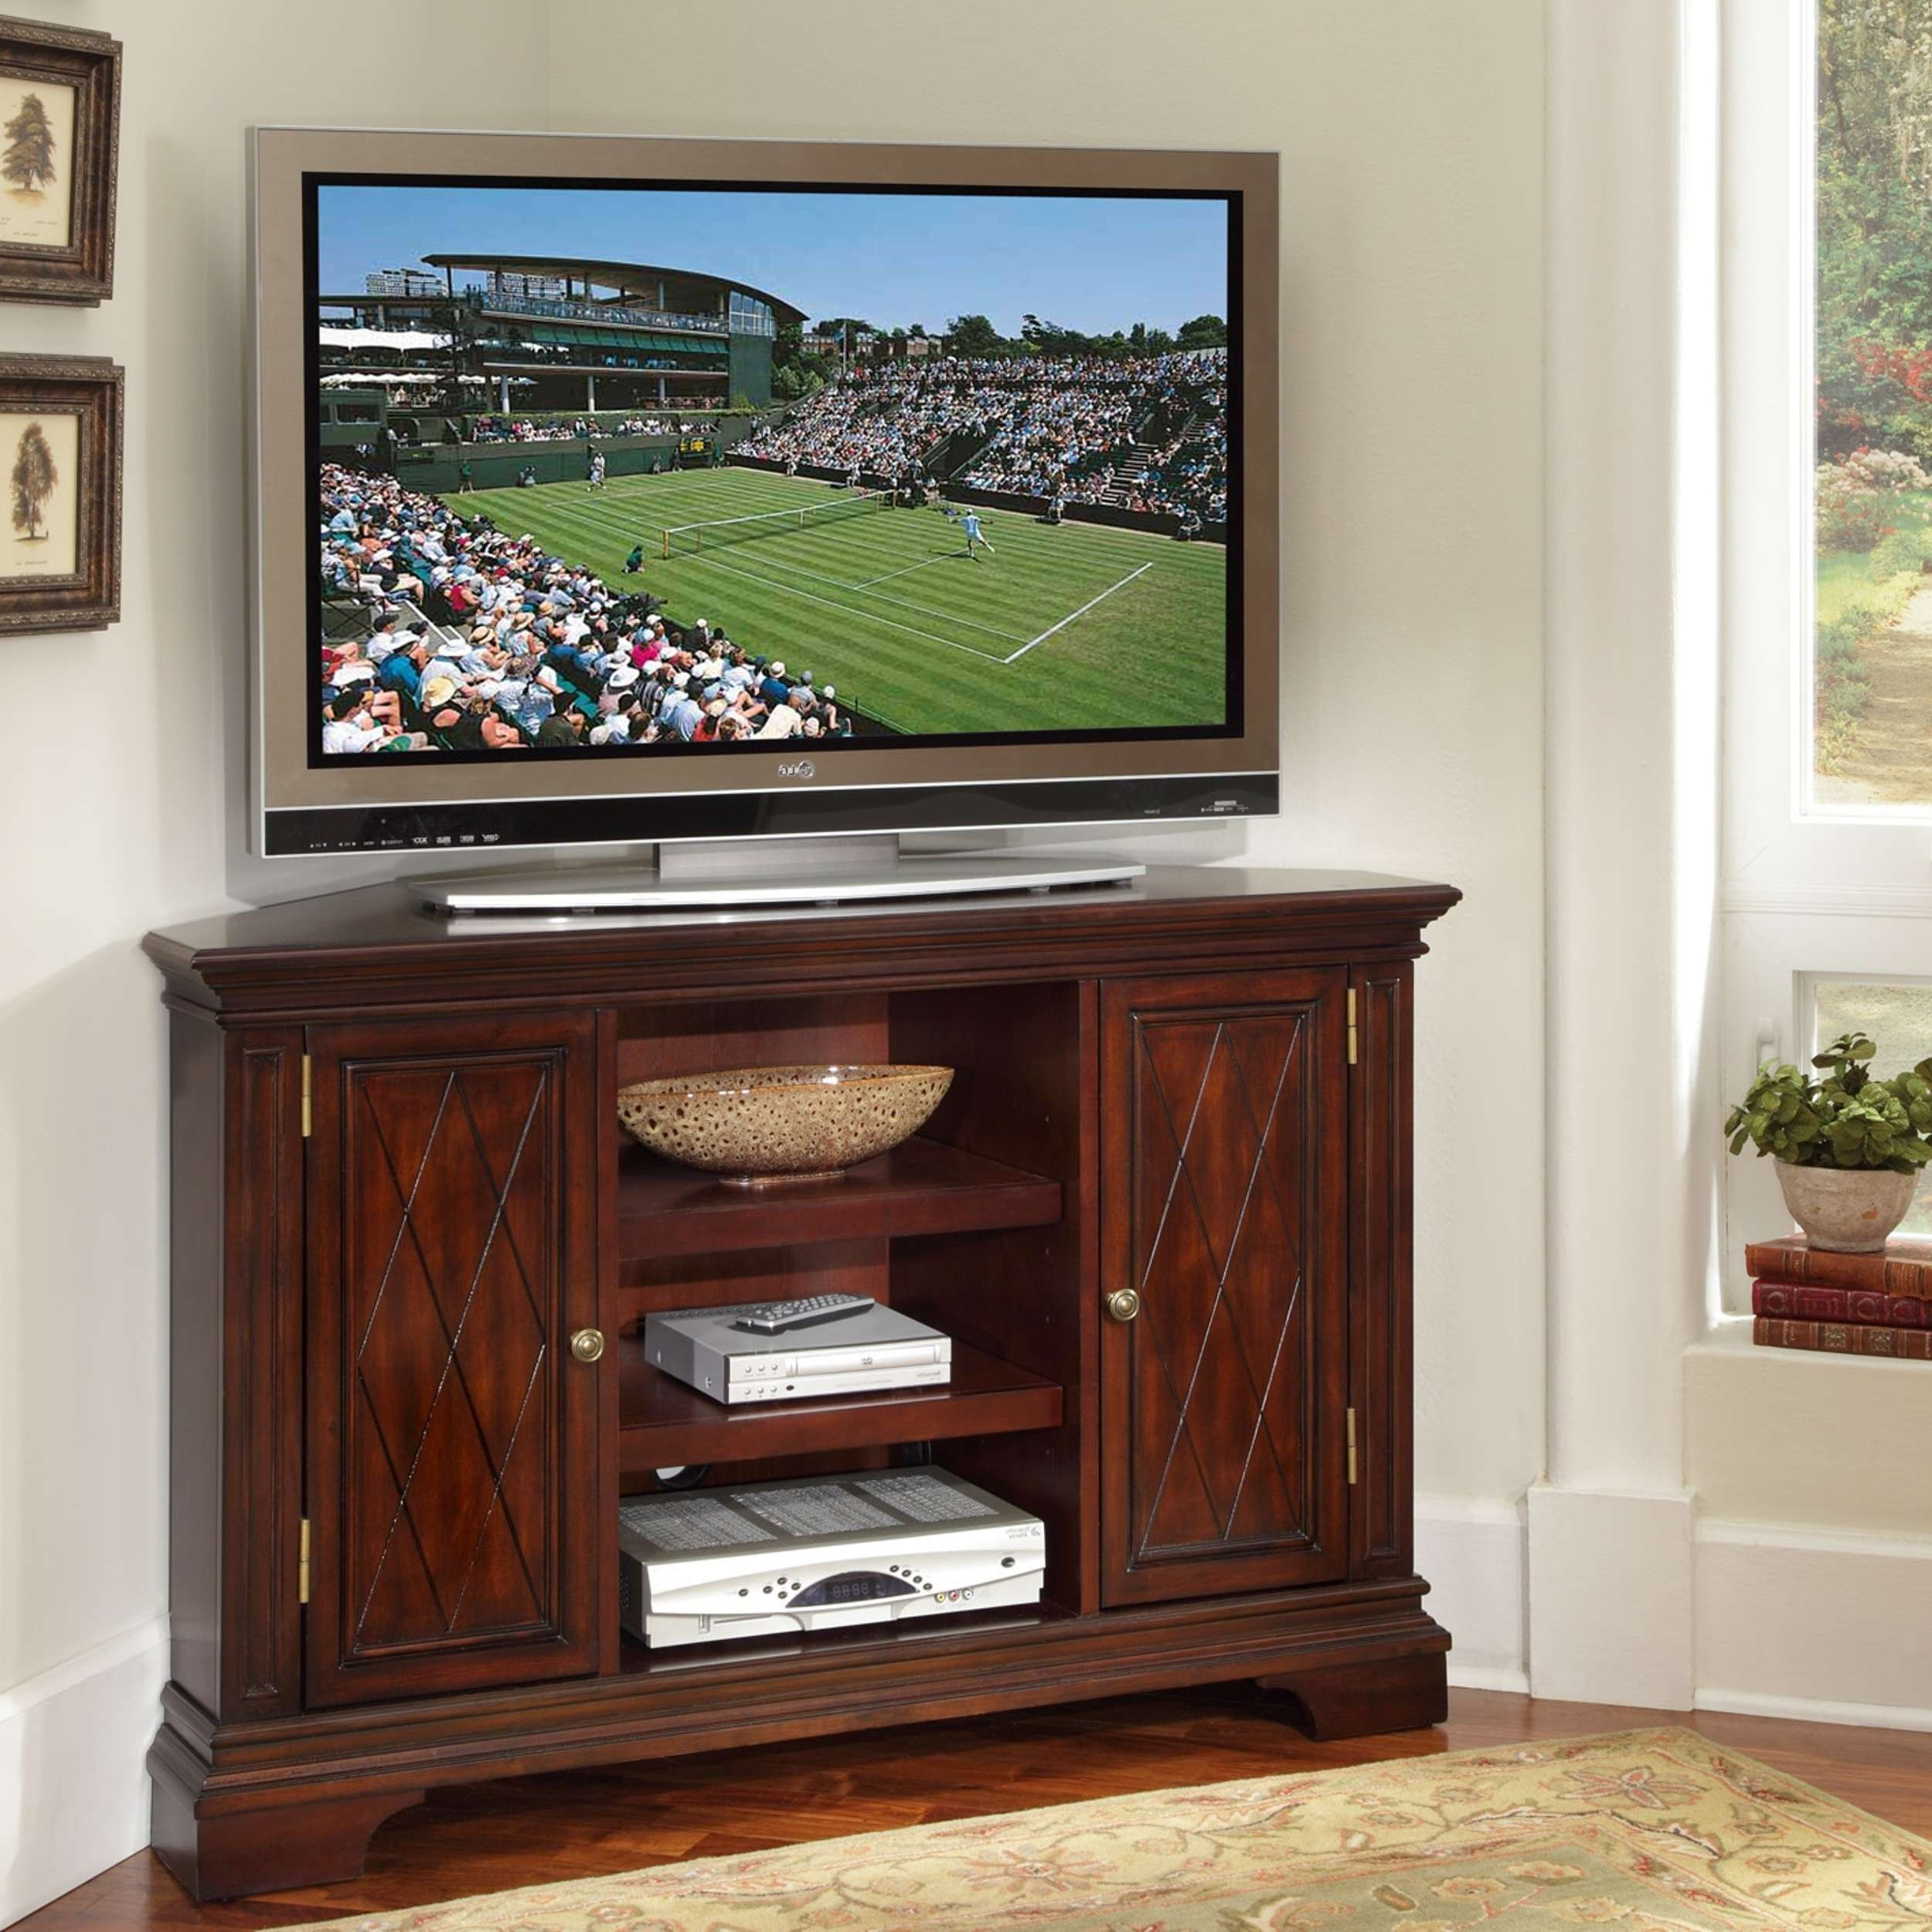 Cherry Wood Tv Stands For Inch Tvs With Cubbies Furniture Flat Within Cherry Wood Tv Cabinets (View 7 of 20)